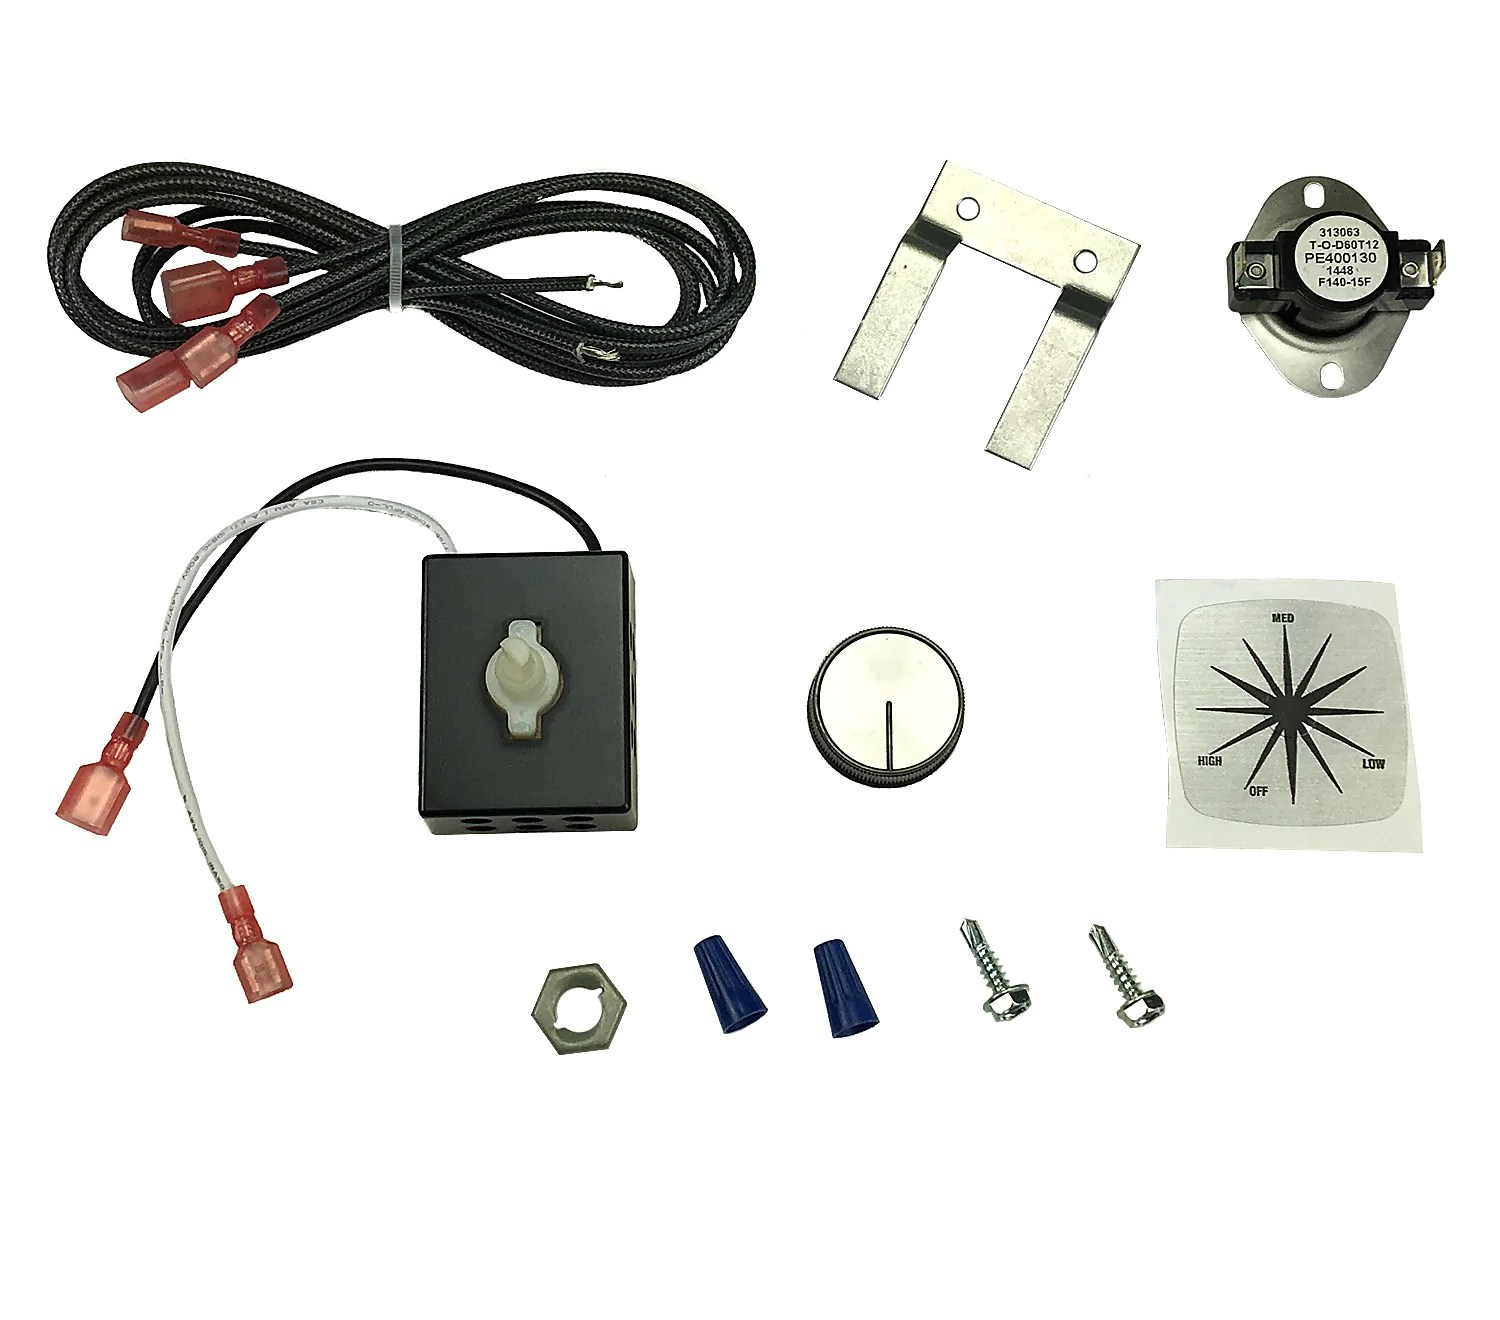 buck wood stove parts stove replacement parts for buck wood stoves stove parts 4 less [ 1500 x 1320 Pixel ]